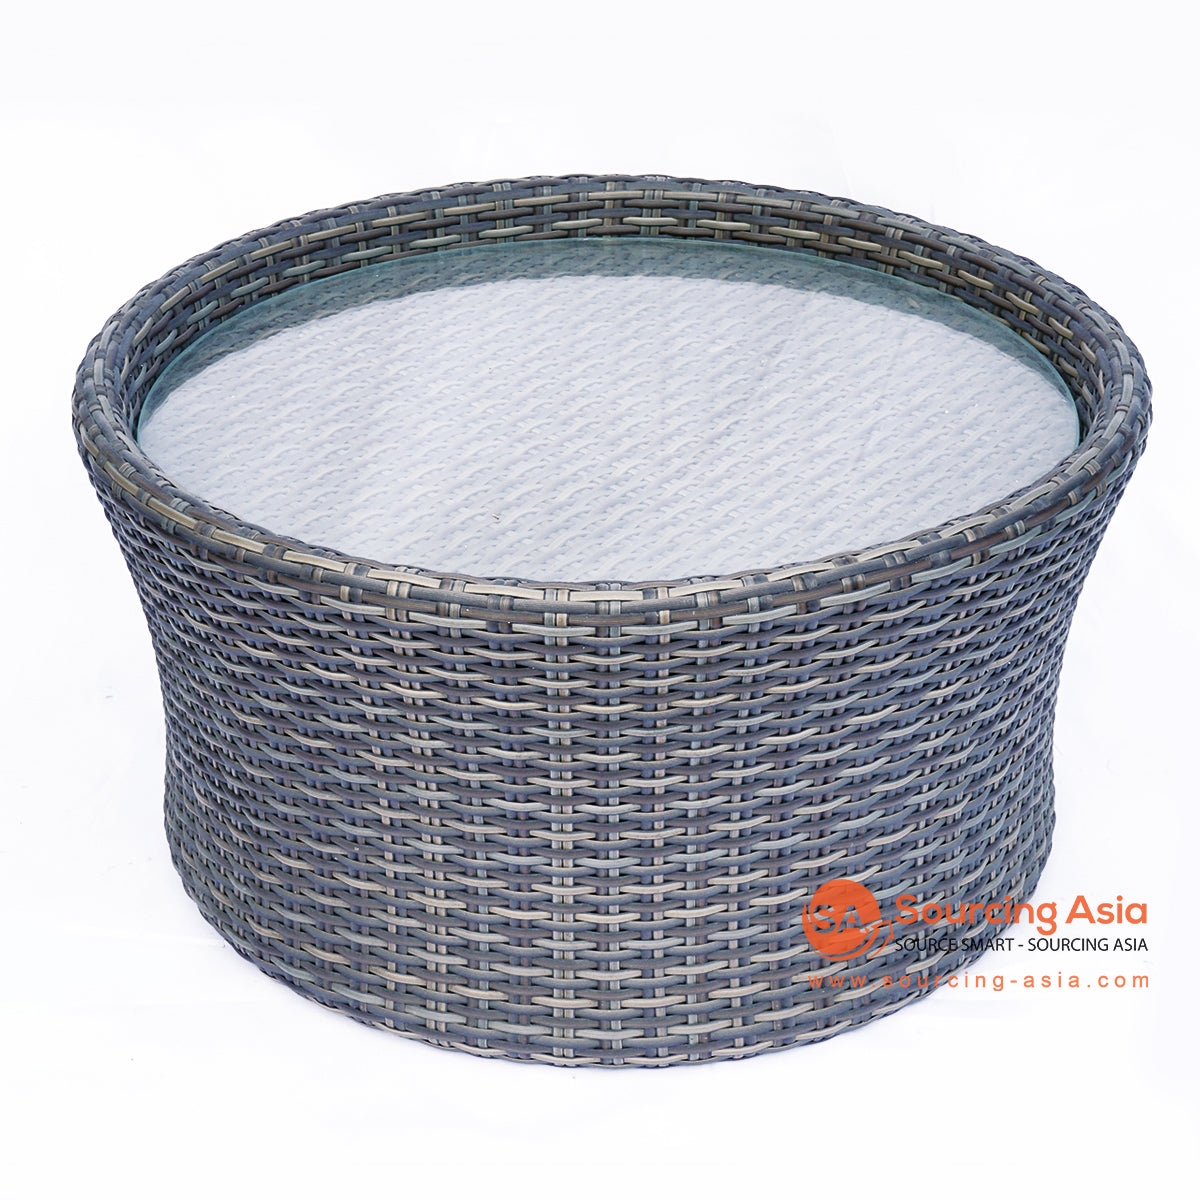 BNTC005-1 ROUND SYNTHETIC RATTAN TRAY TABLE